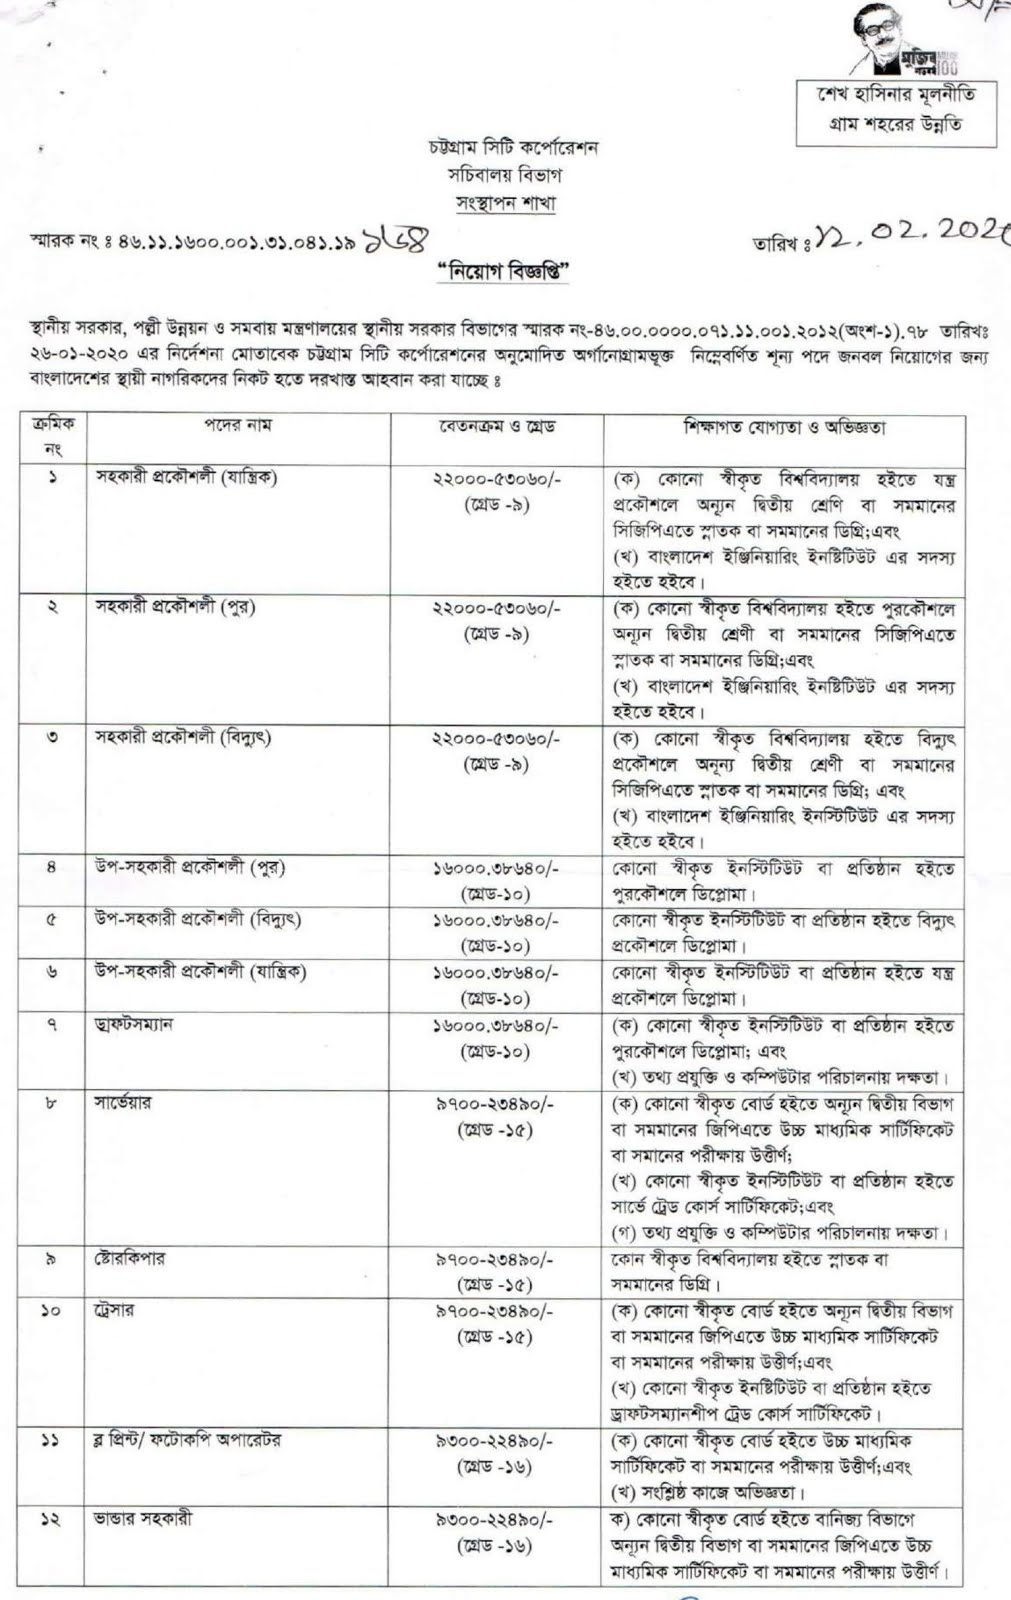 Chattogram City Corporation Job Circular 2020